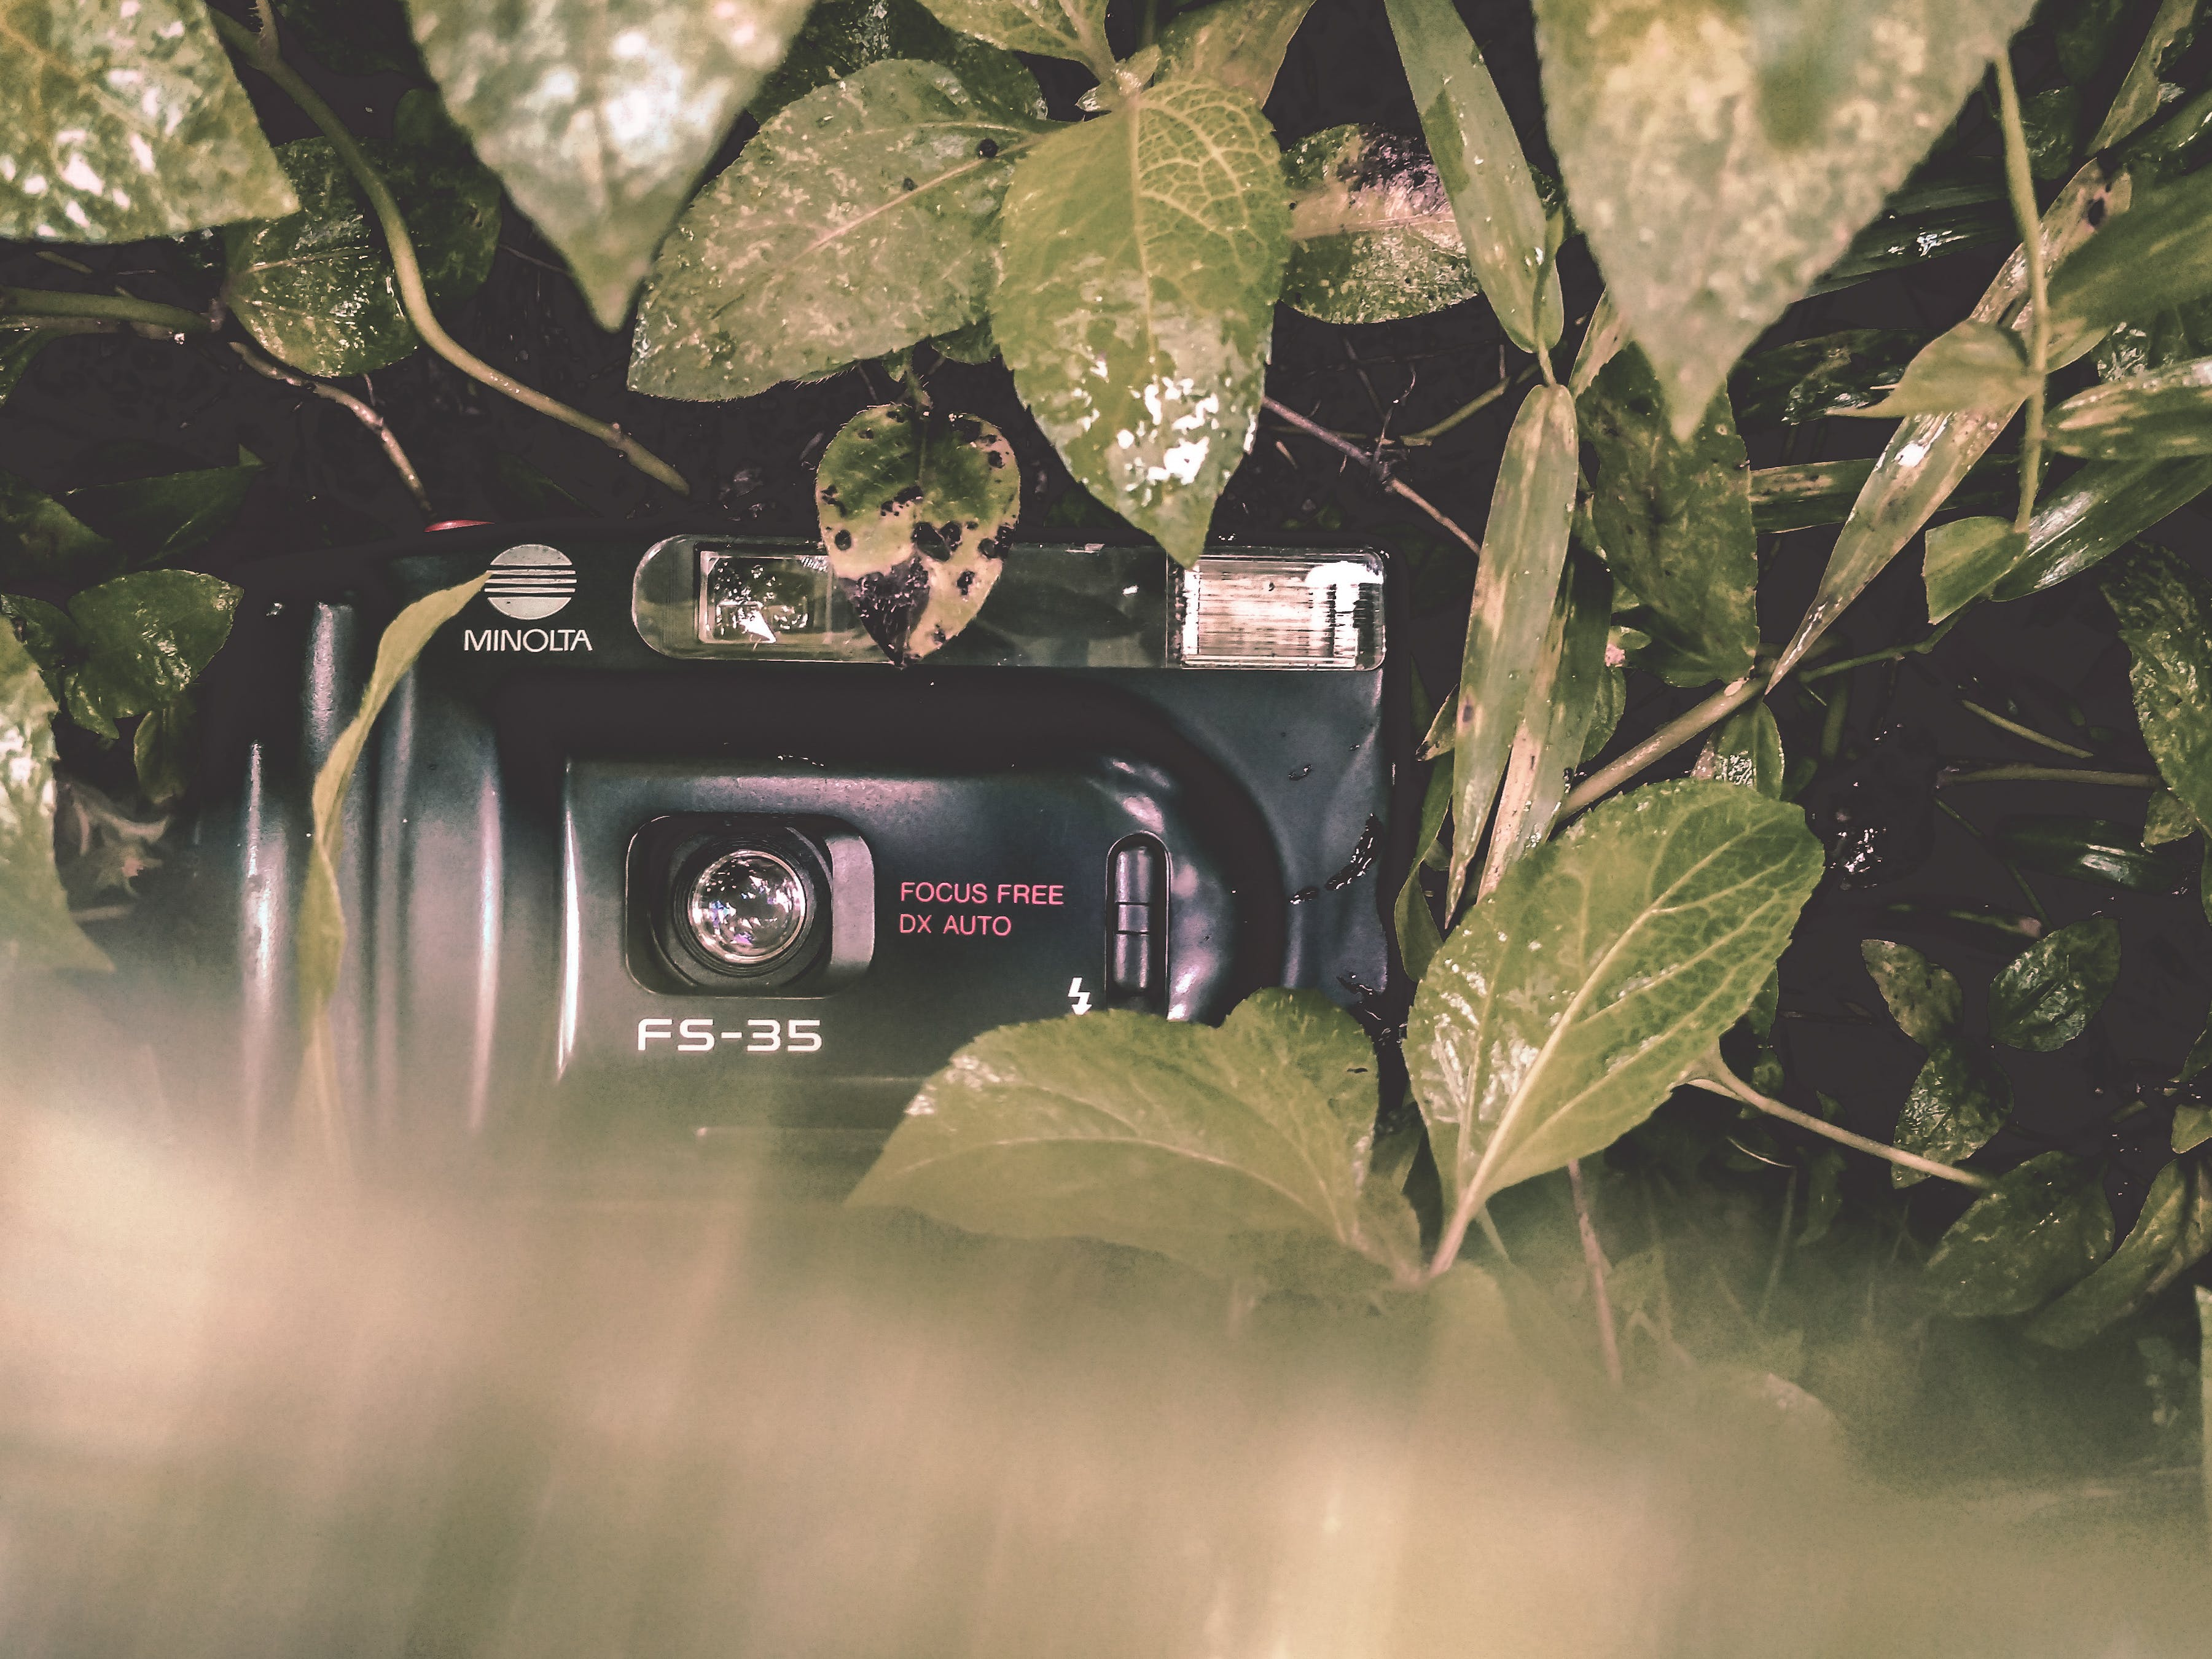 Black Minolta Film Camera Covered With Leaves